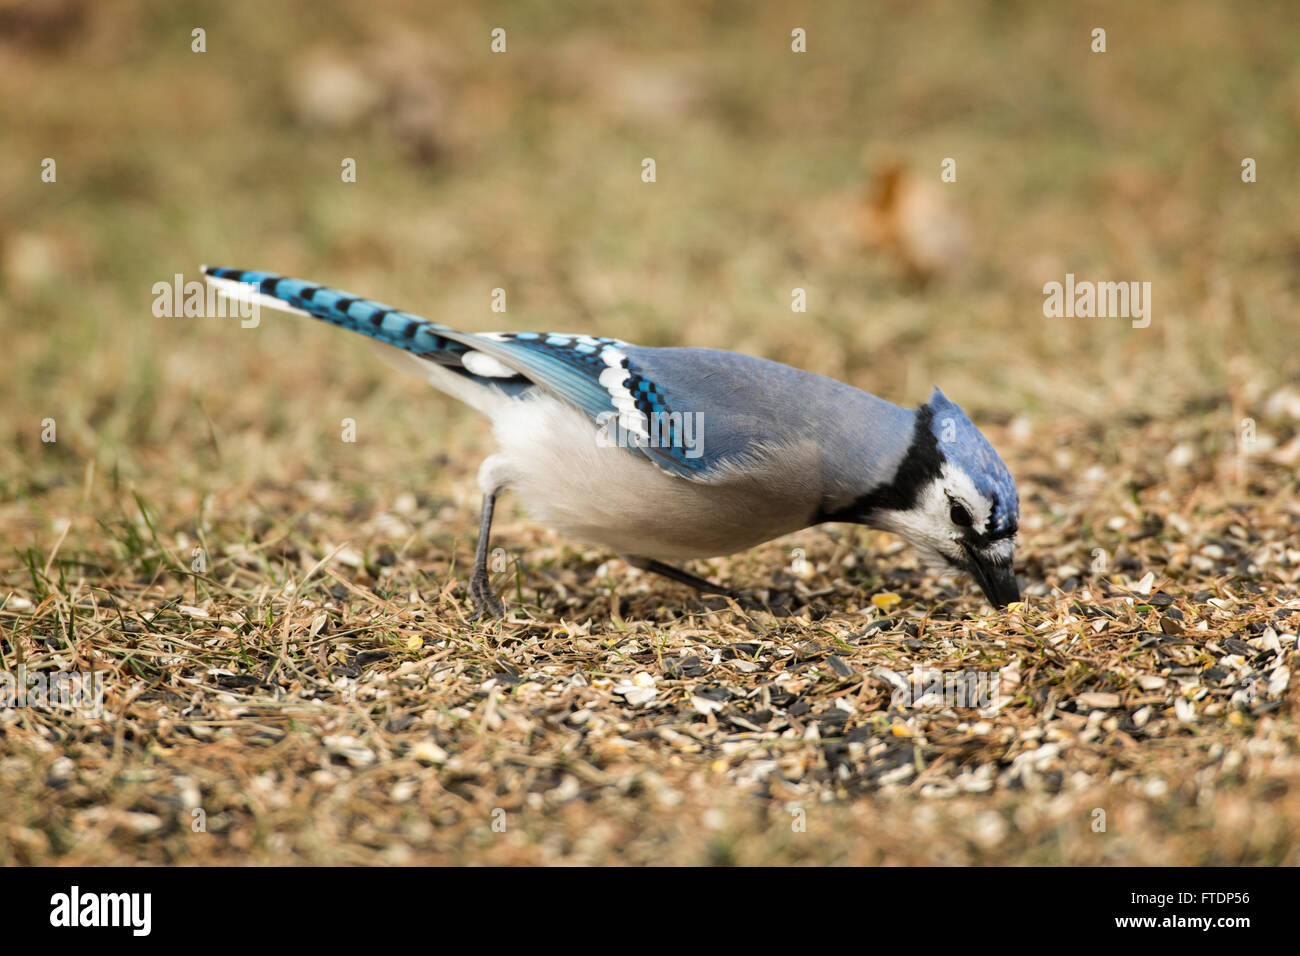 Blue Jay foraging in spilled seeds on ground. Stock Photo